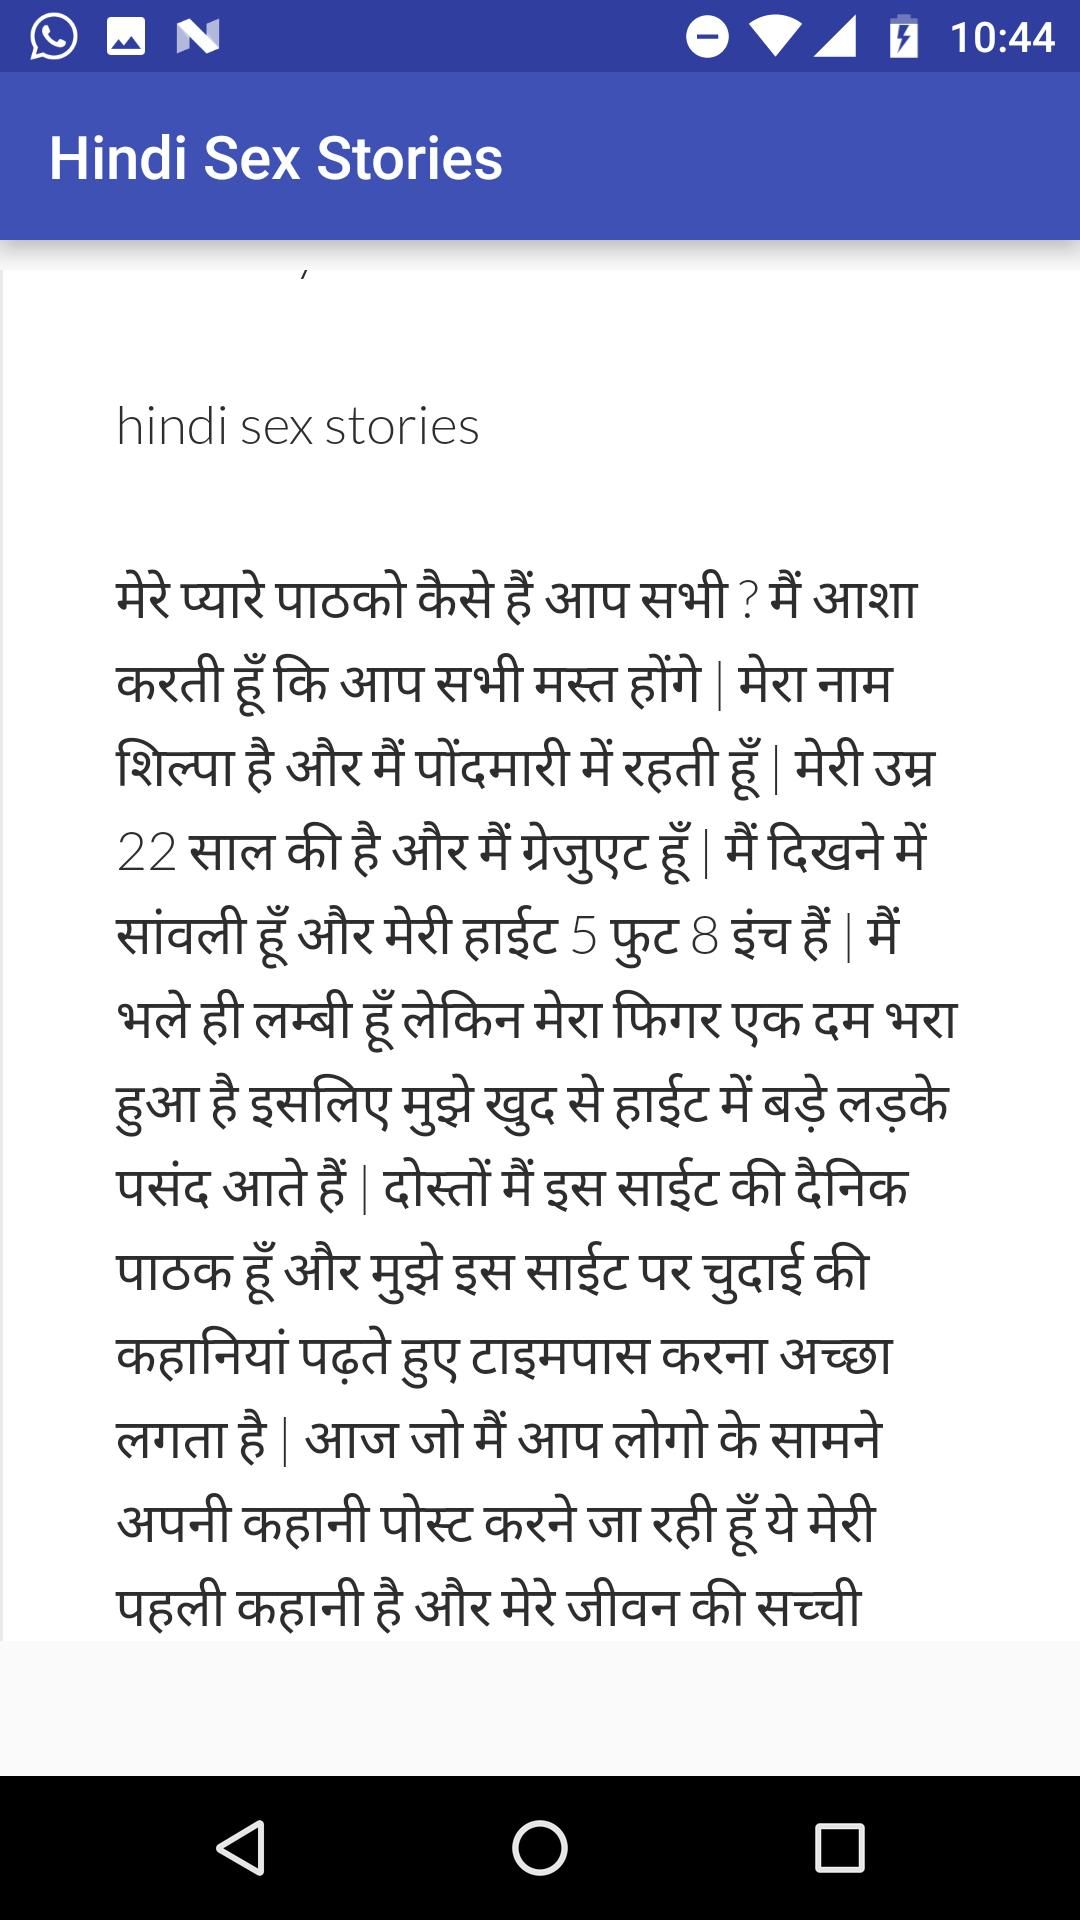 Hindi Sex Stories for Android - APK Download